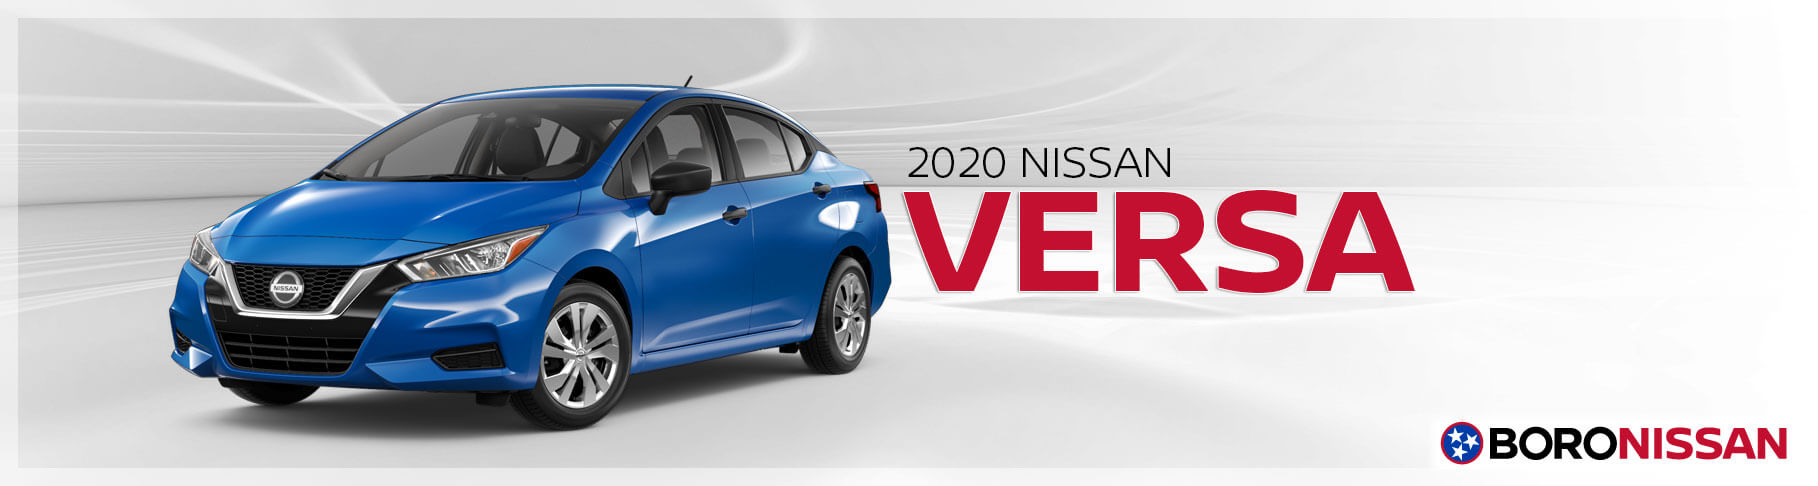 The New 2020 Nissan Versa In Murfreesboro Nissan